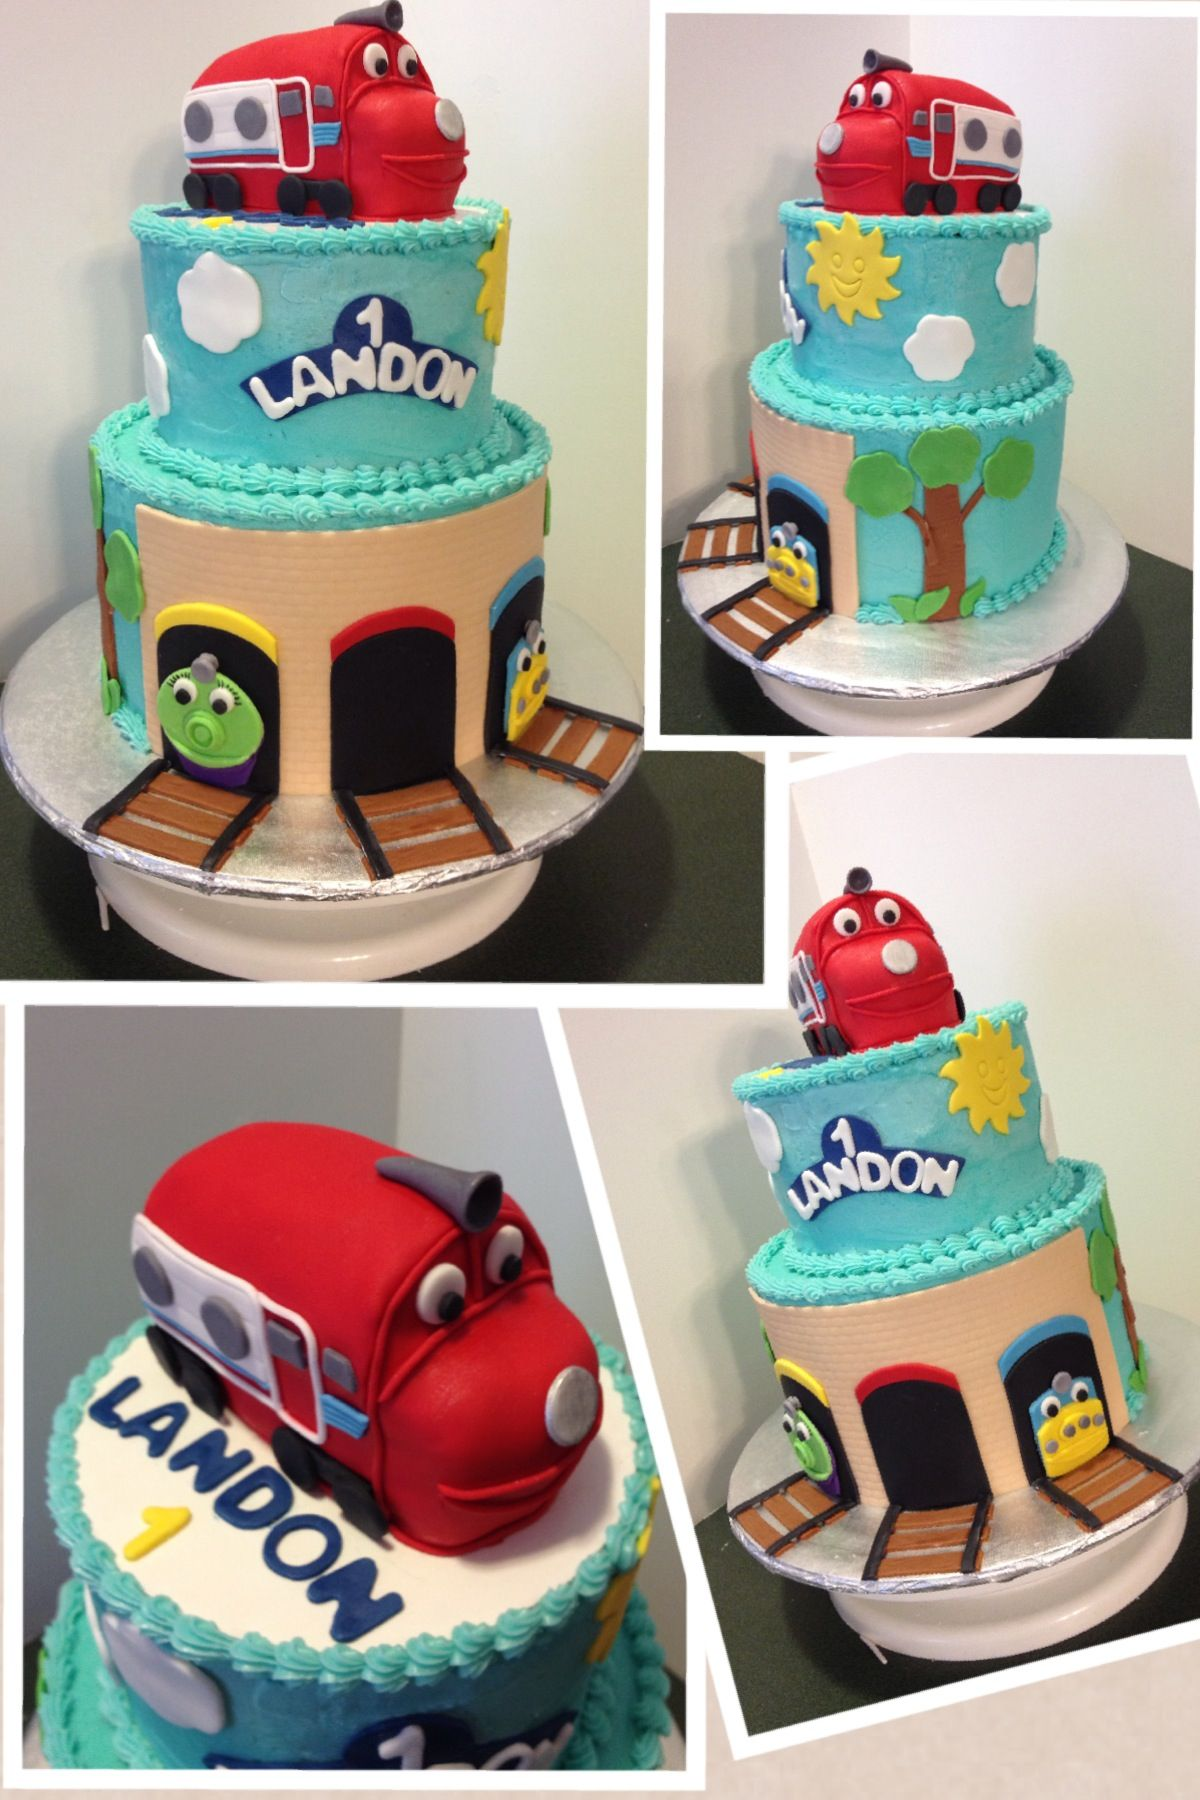 Chuggington St Birthday Cake That I Made For My Nephew The Small - Small first birthday cakes